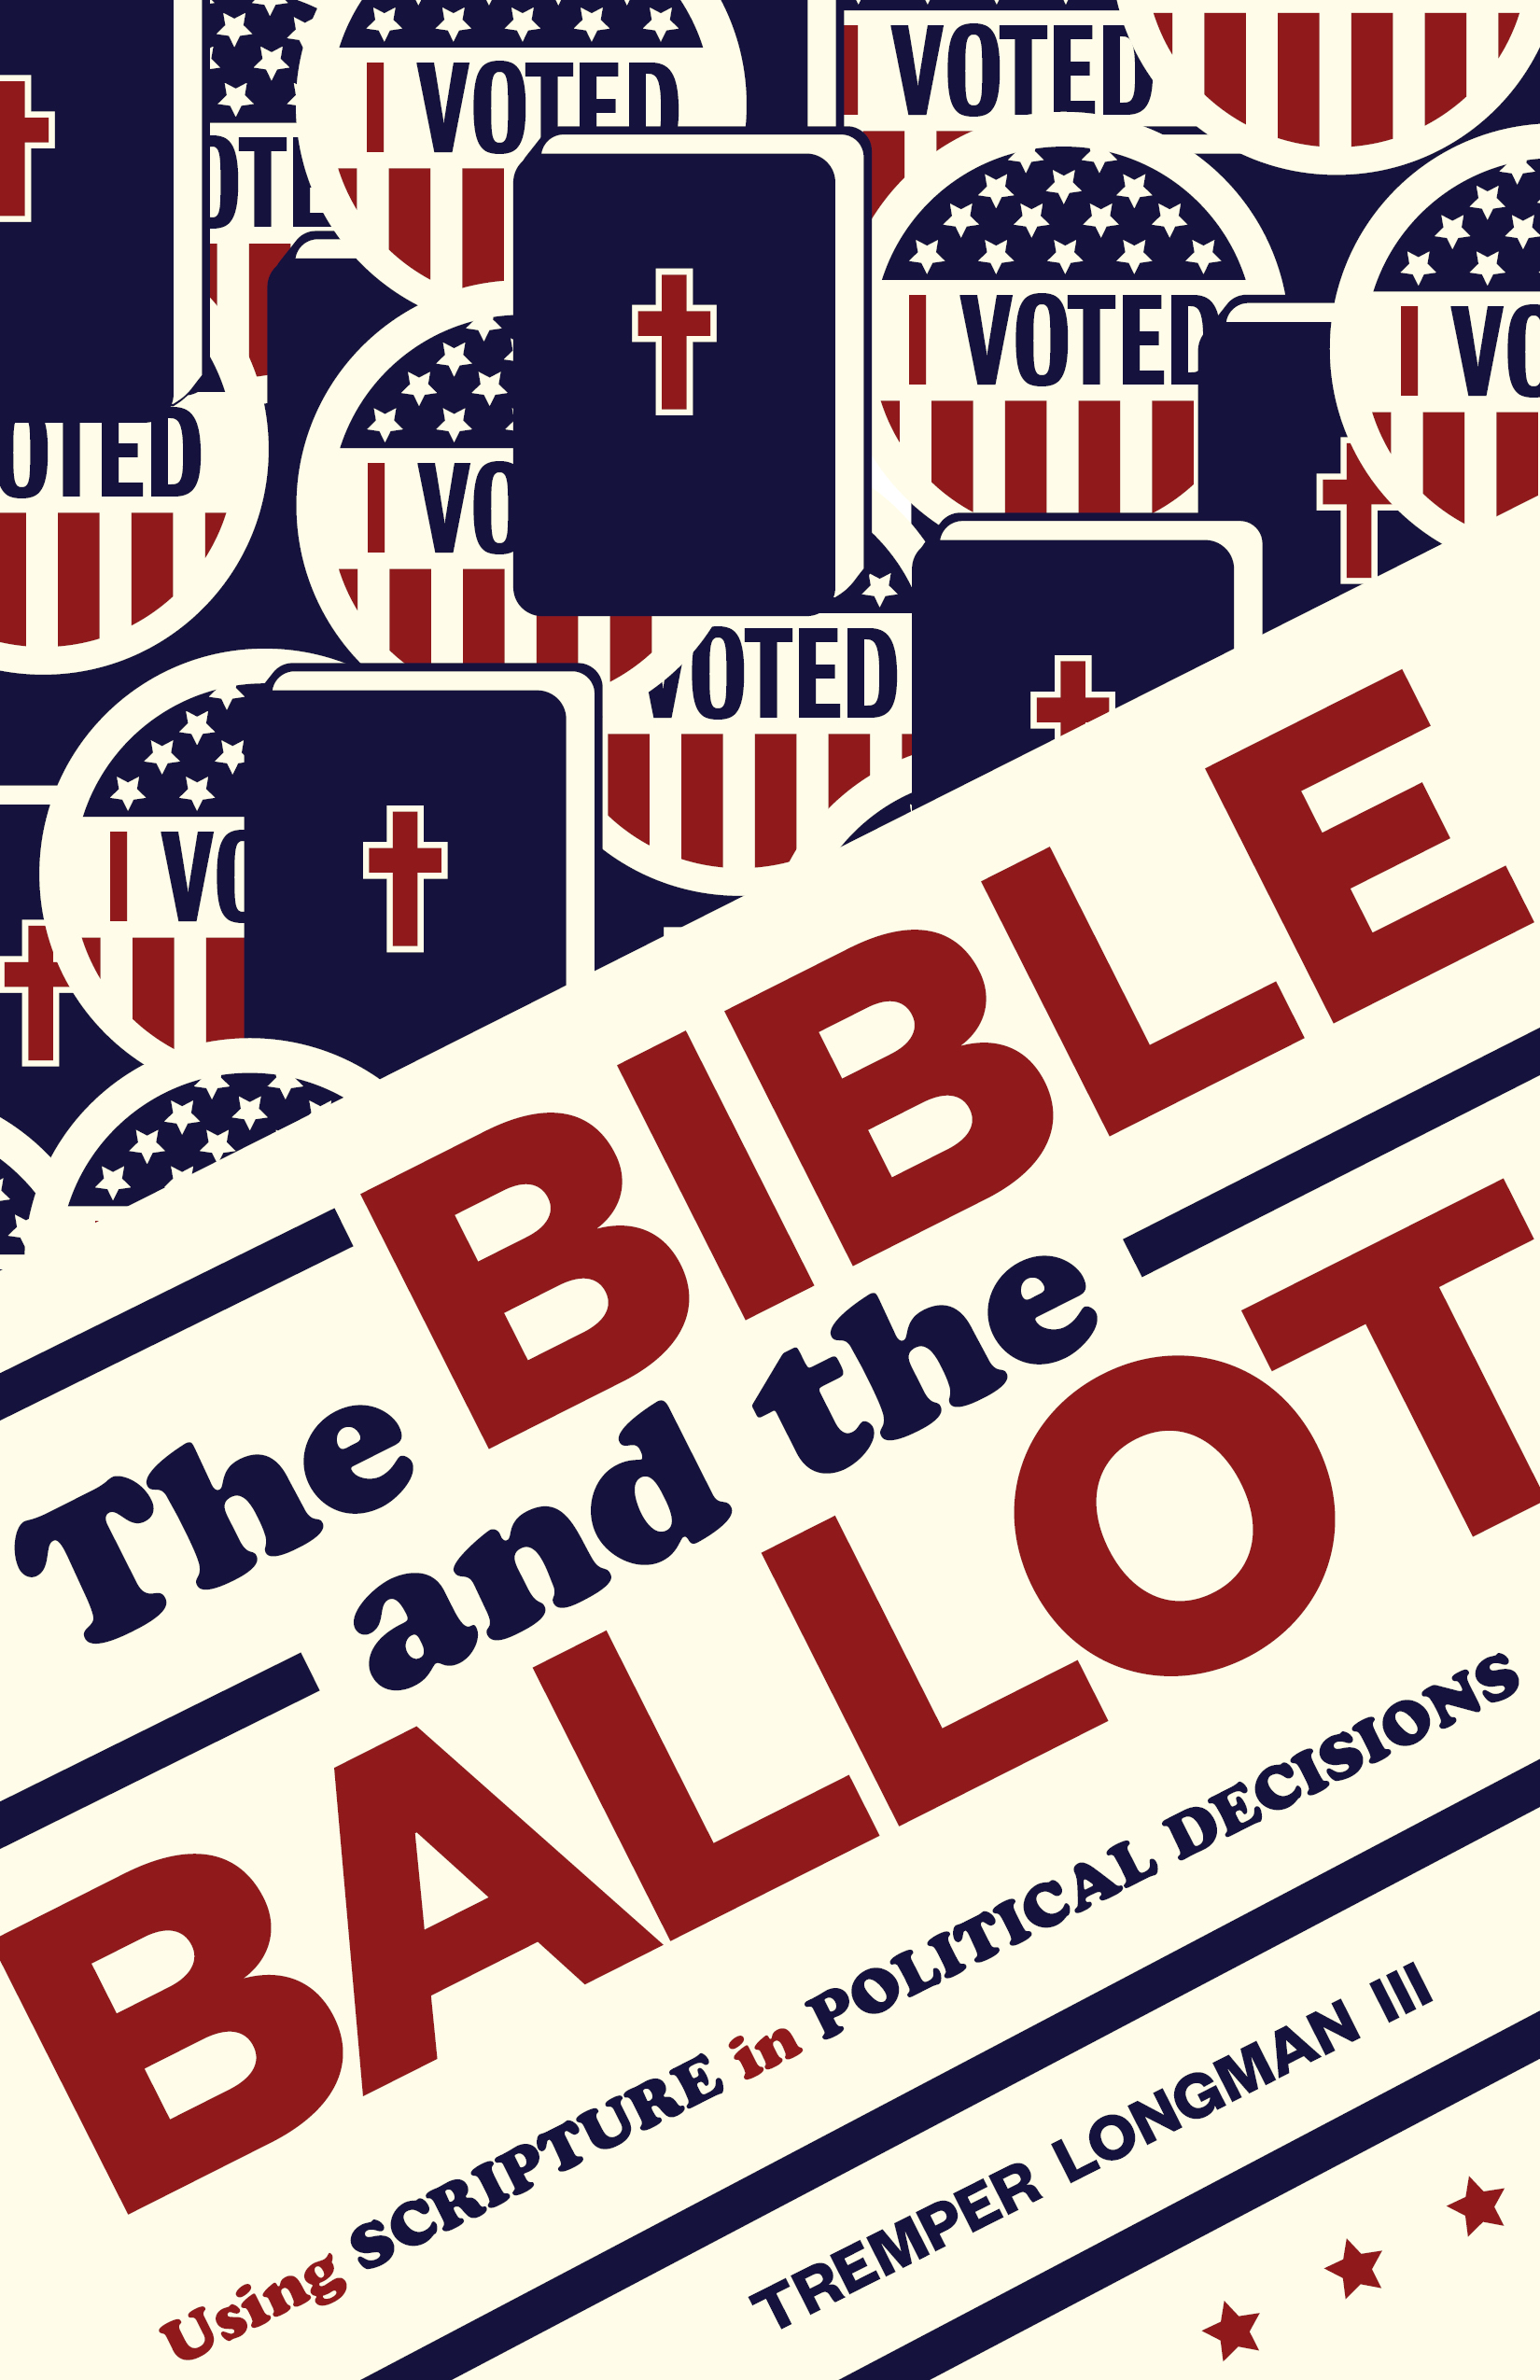 Book Review: Tremper Longman, III, The Bible and the Ballot